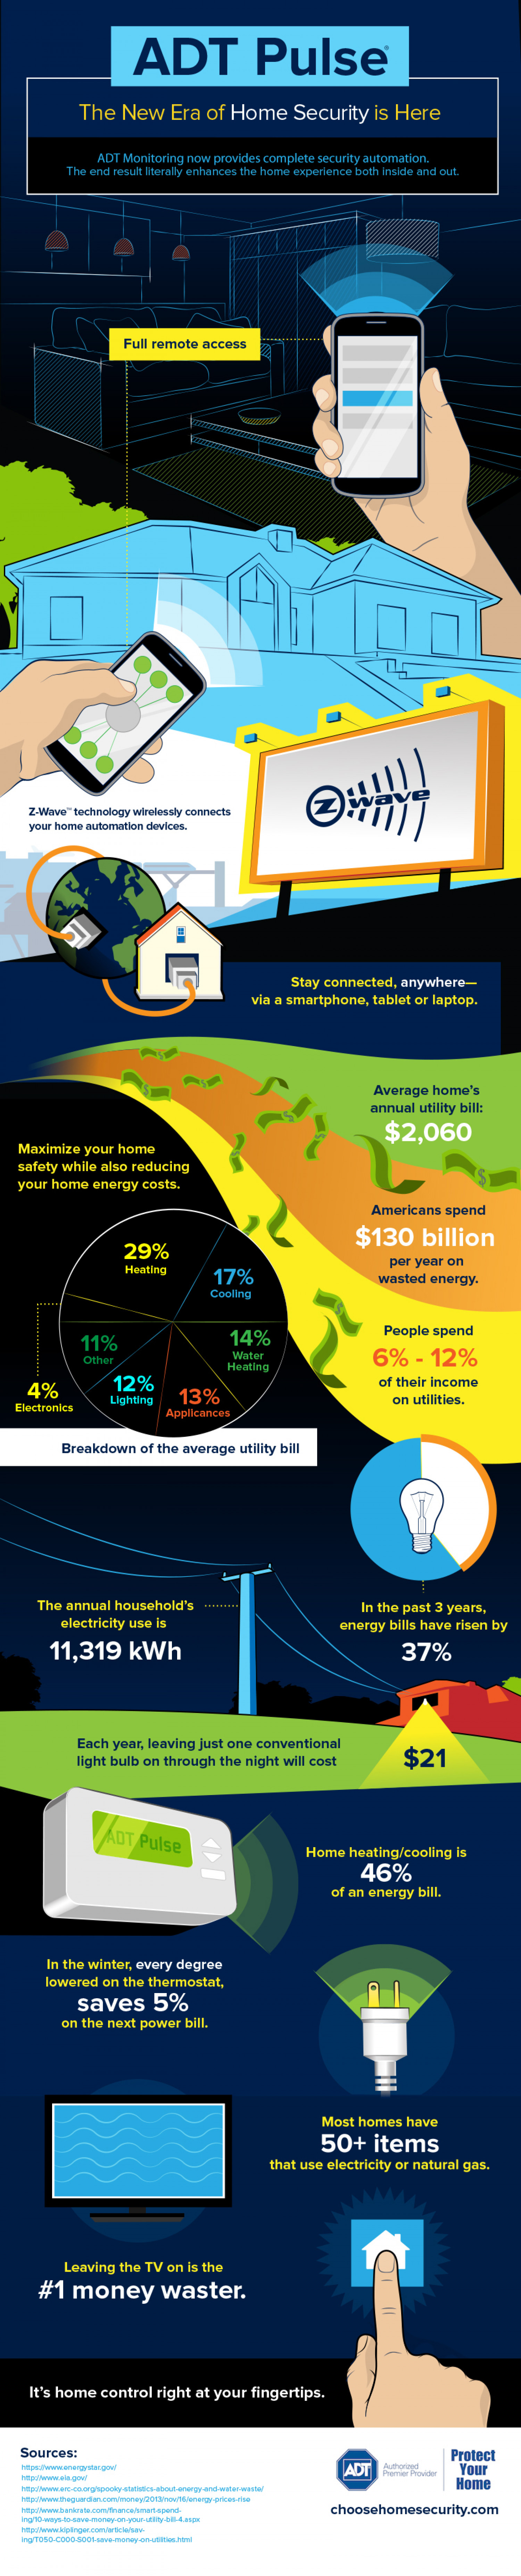 ADT: The New Era of Home Security is Here Infographic